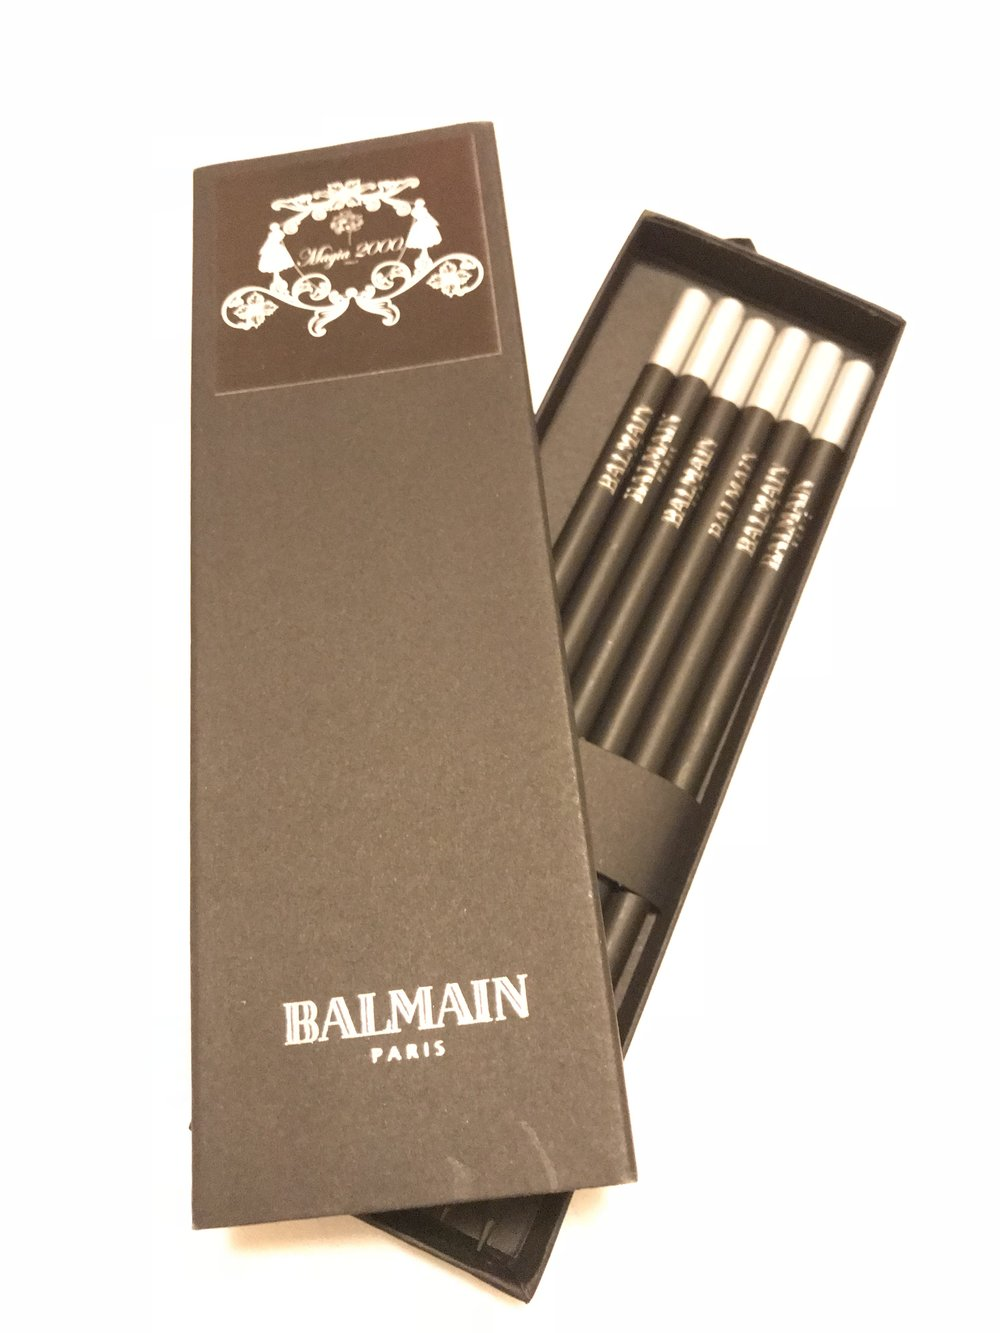 Best of the bunch: Balmain pencils!